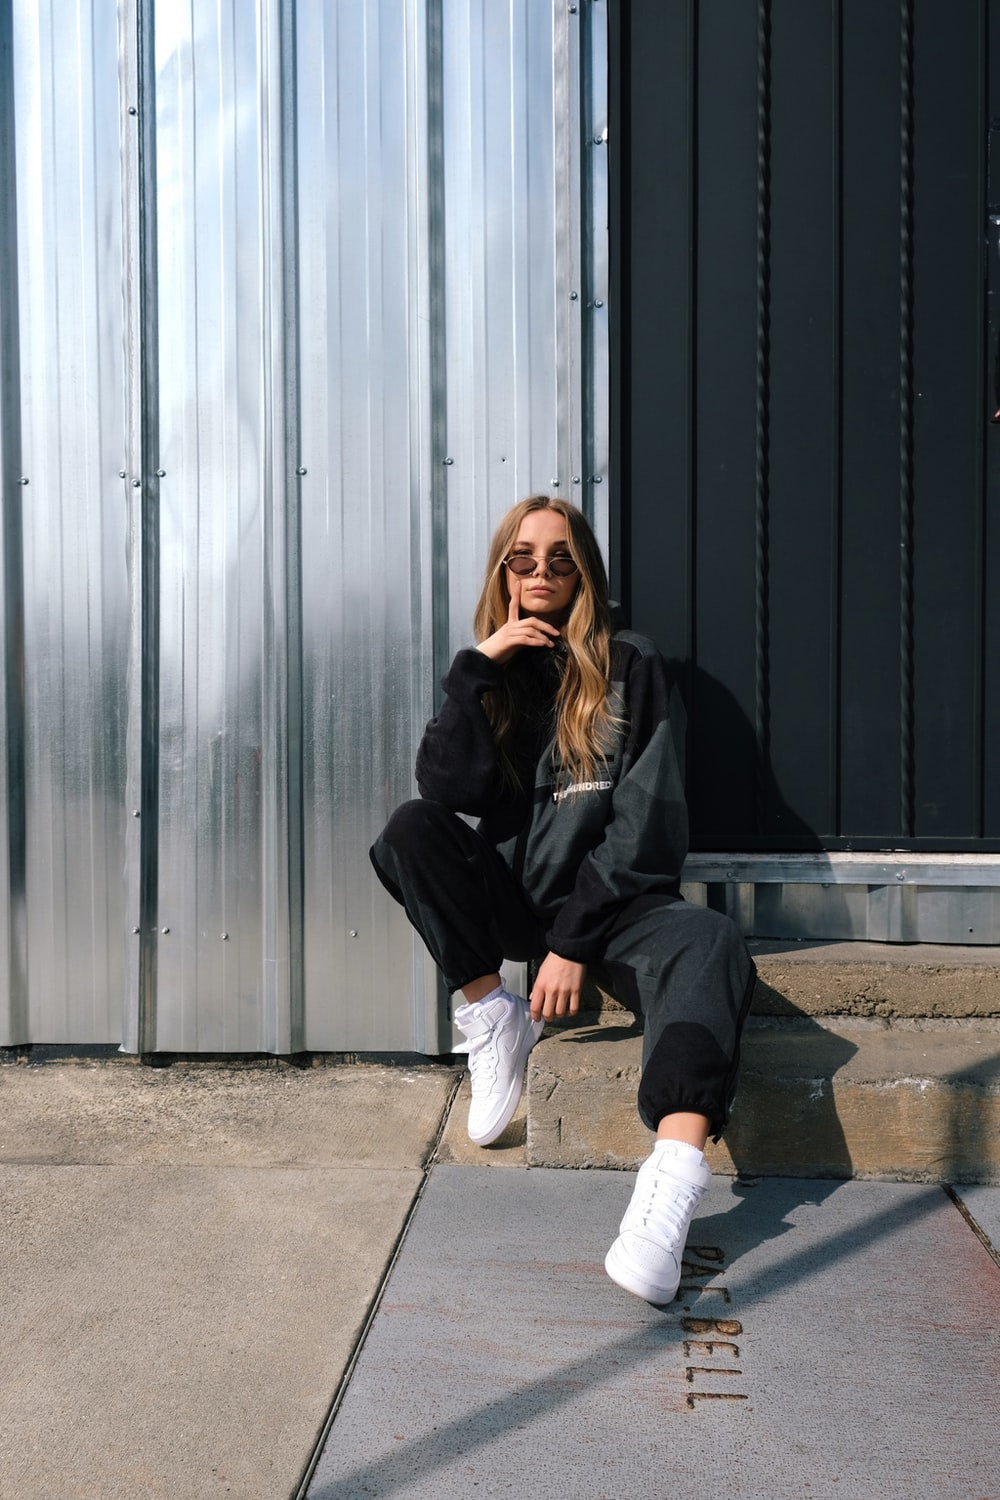 woman in black jacket and white pants sitting on gray concrete floor